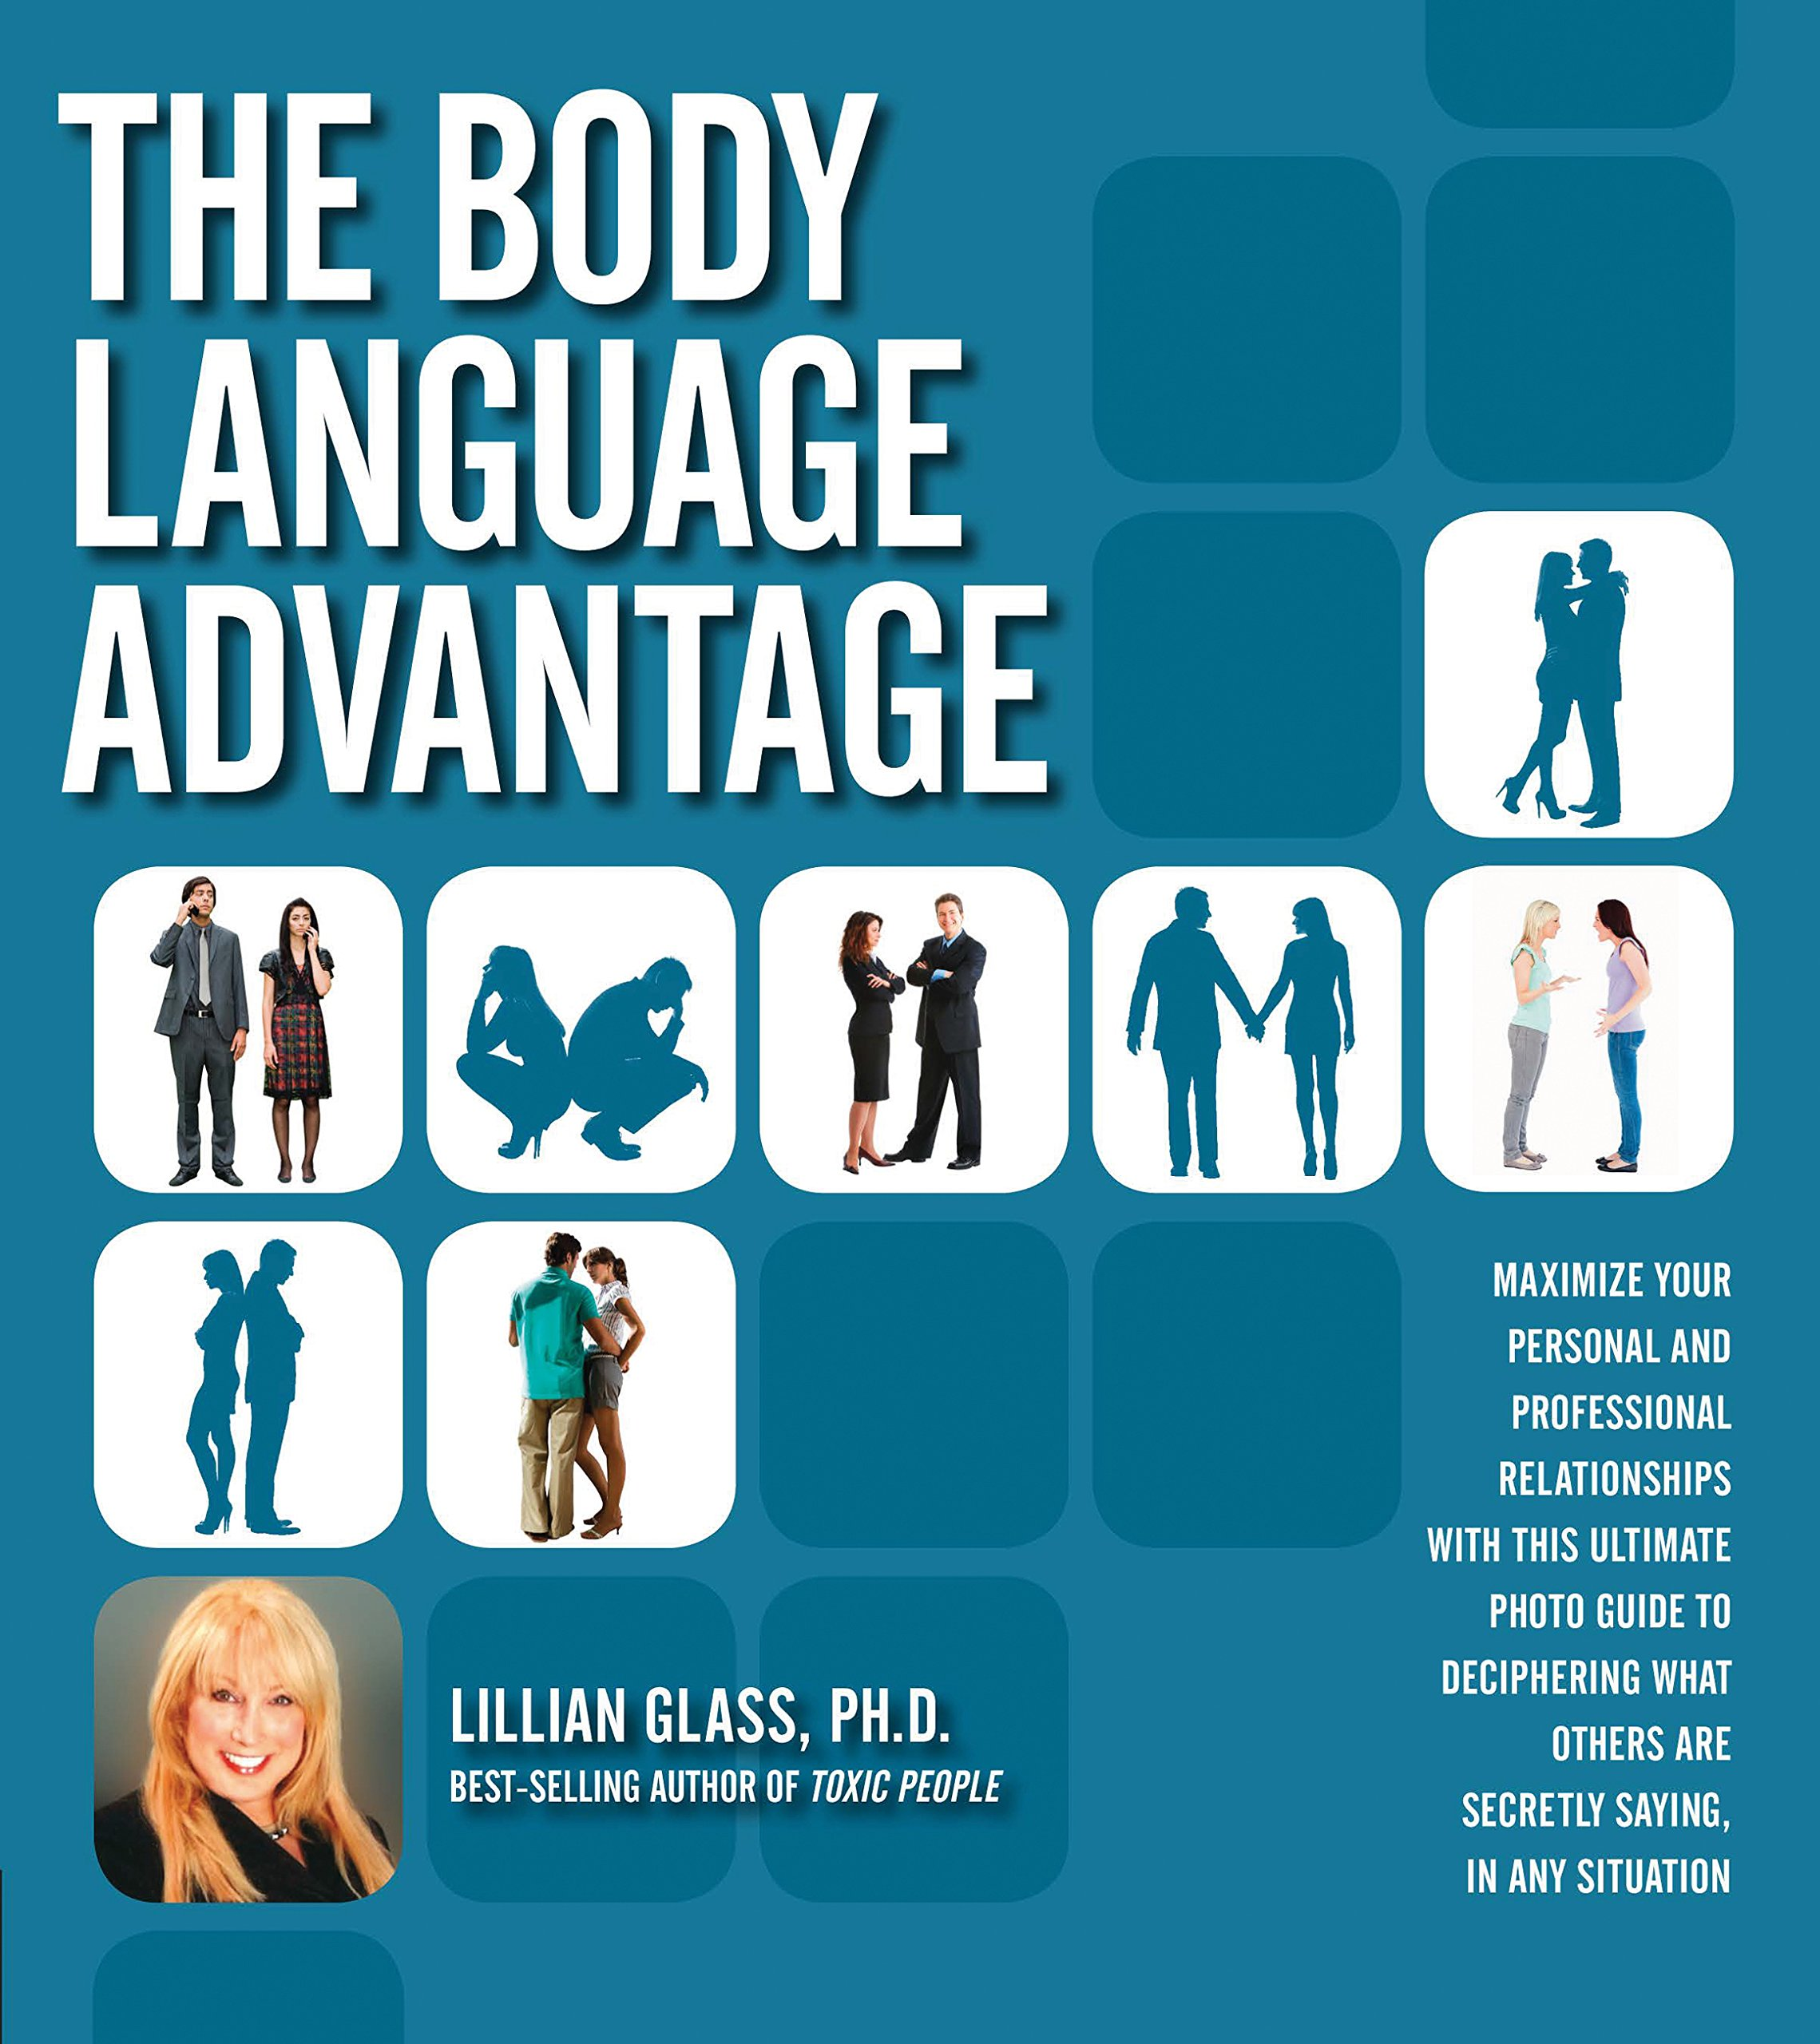 The Body Language Advantage: Maximize Your Personal and Professional Relationships with this Ultimate Photo Guide to Deciphering What Others Are Secretly Saying, in Any Situation by Fair Winds Press